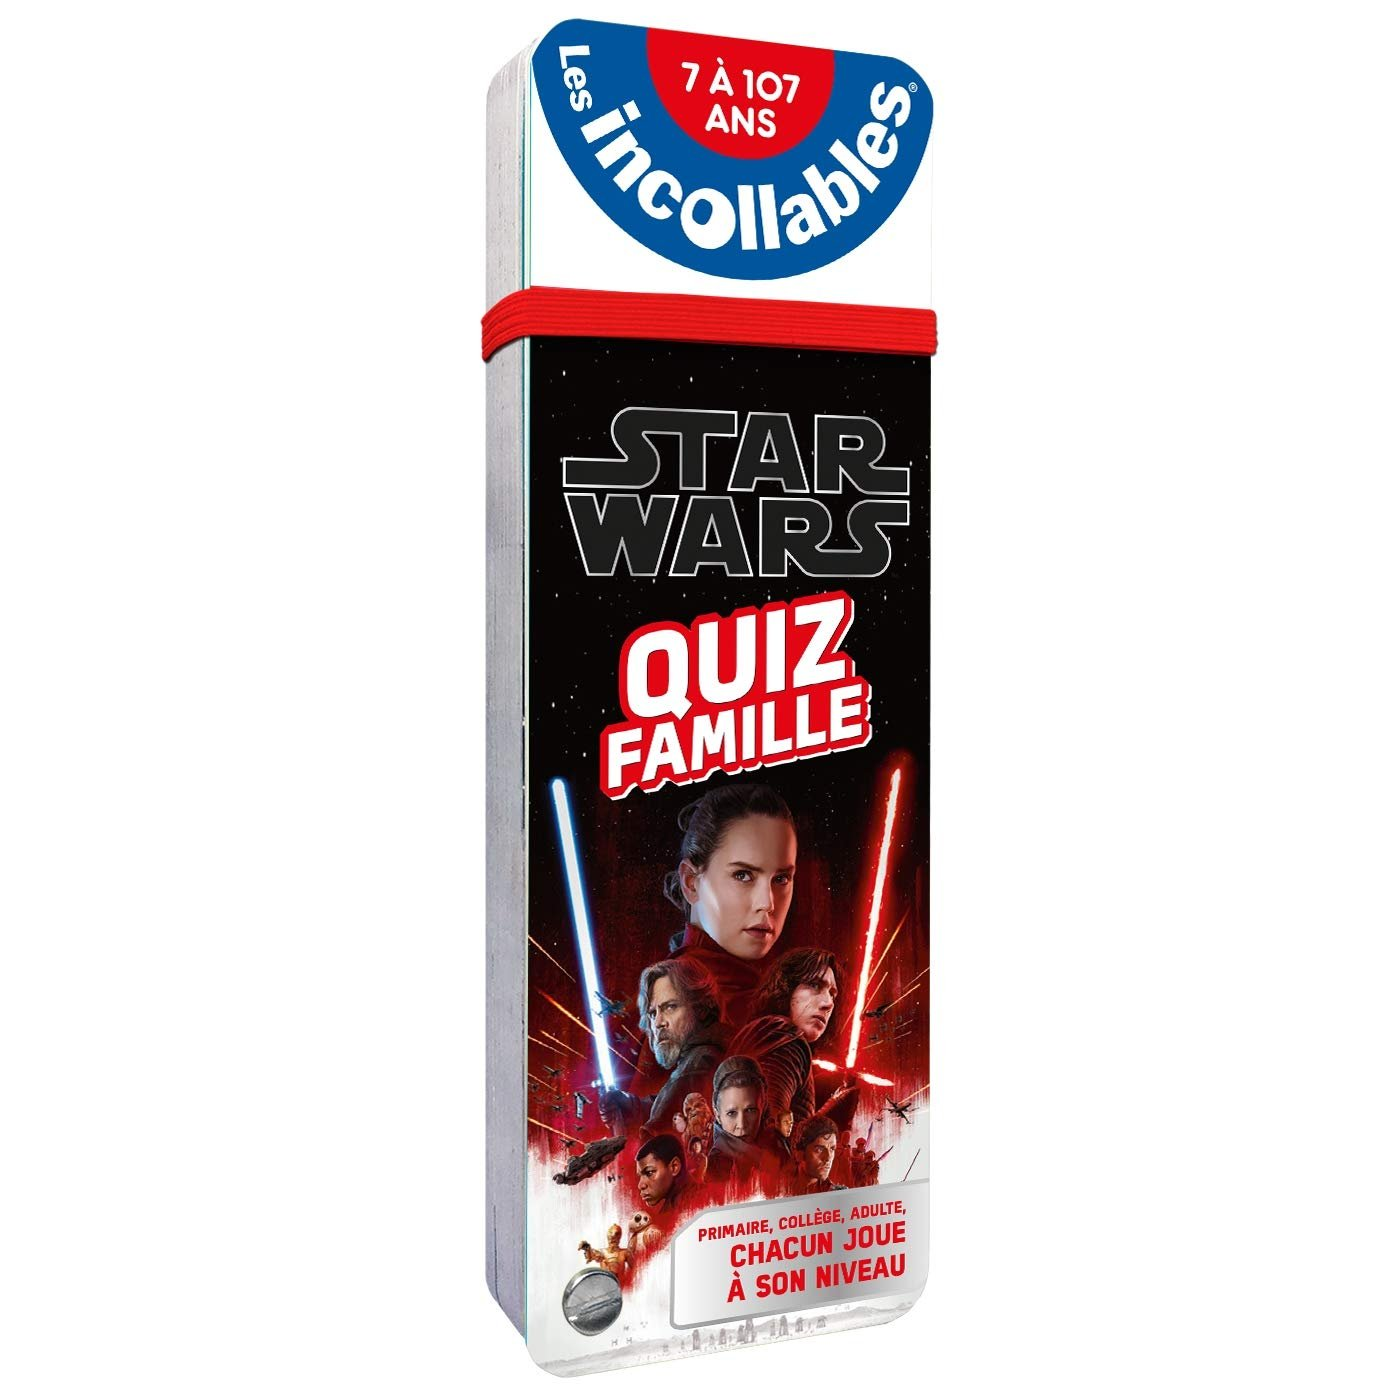 Star Wars - Les Incollables : Quizz Famille